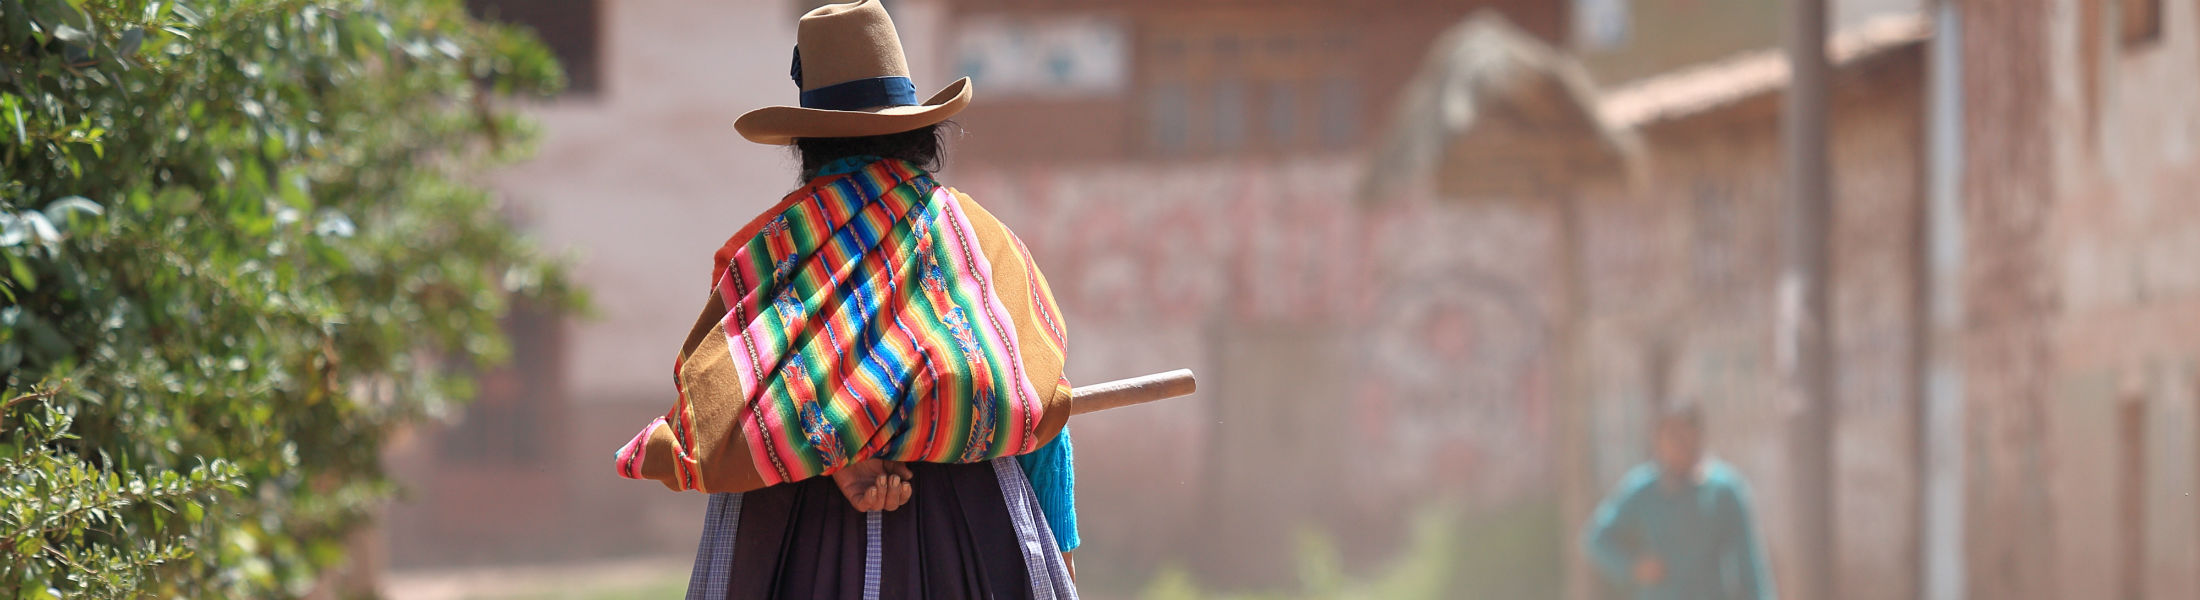 South American typical dress